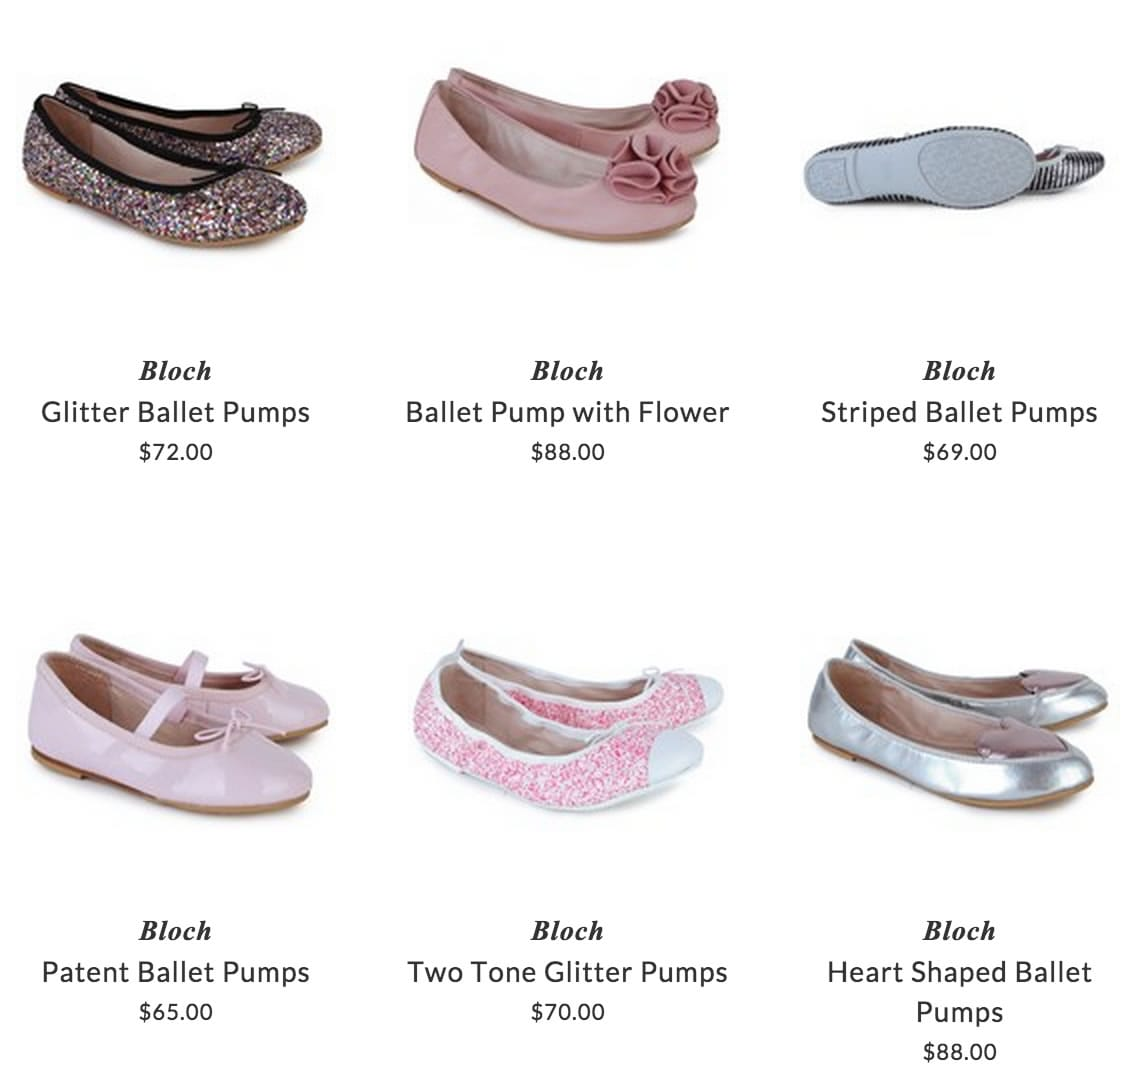 Bloch girls clothing & shoes for dancing